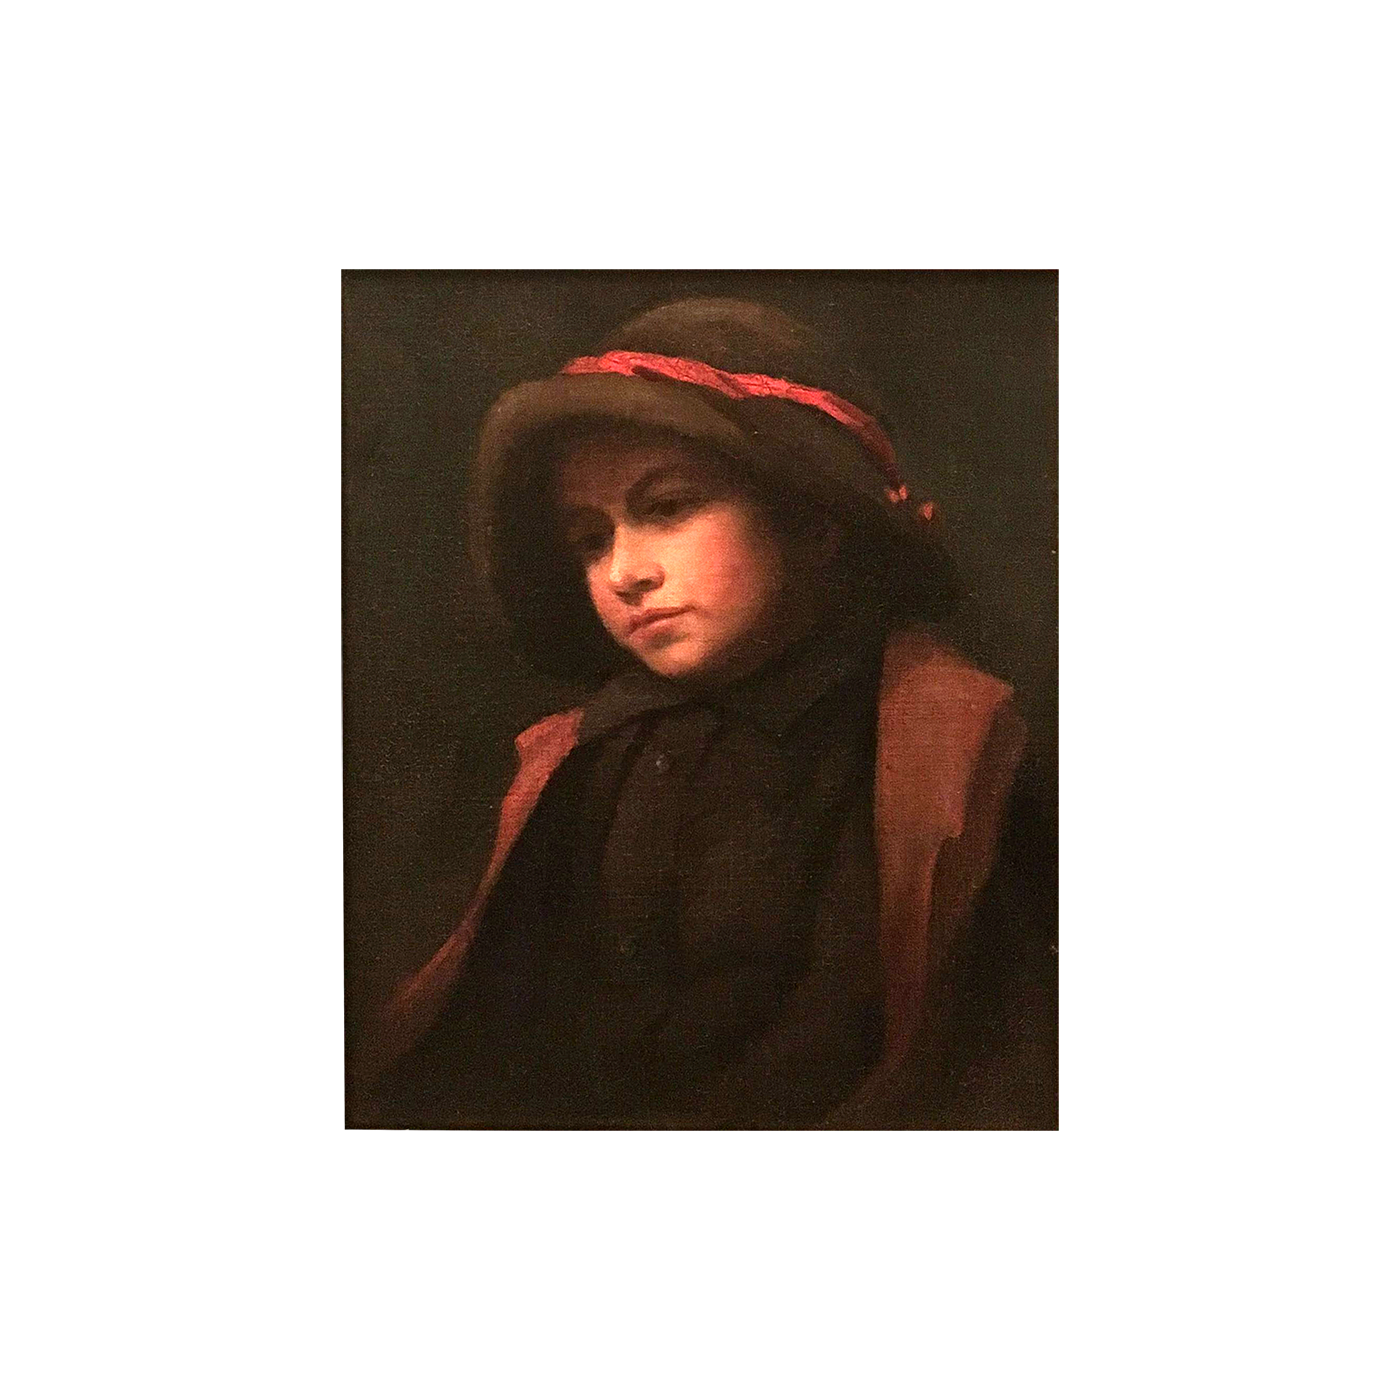 """Charles Sprague Pearce [1851-1914] American painting """"Young boy"""", 1875."""